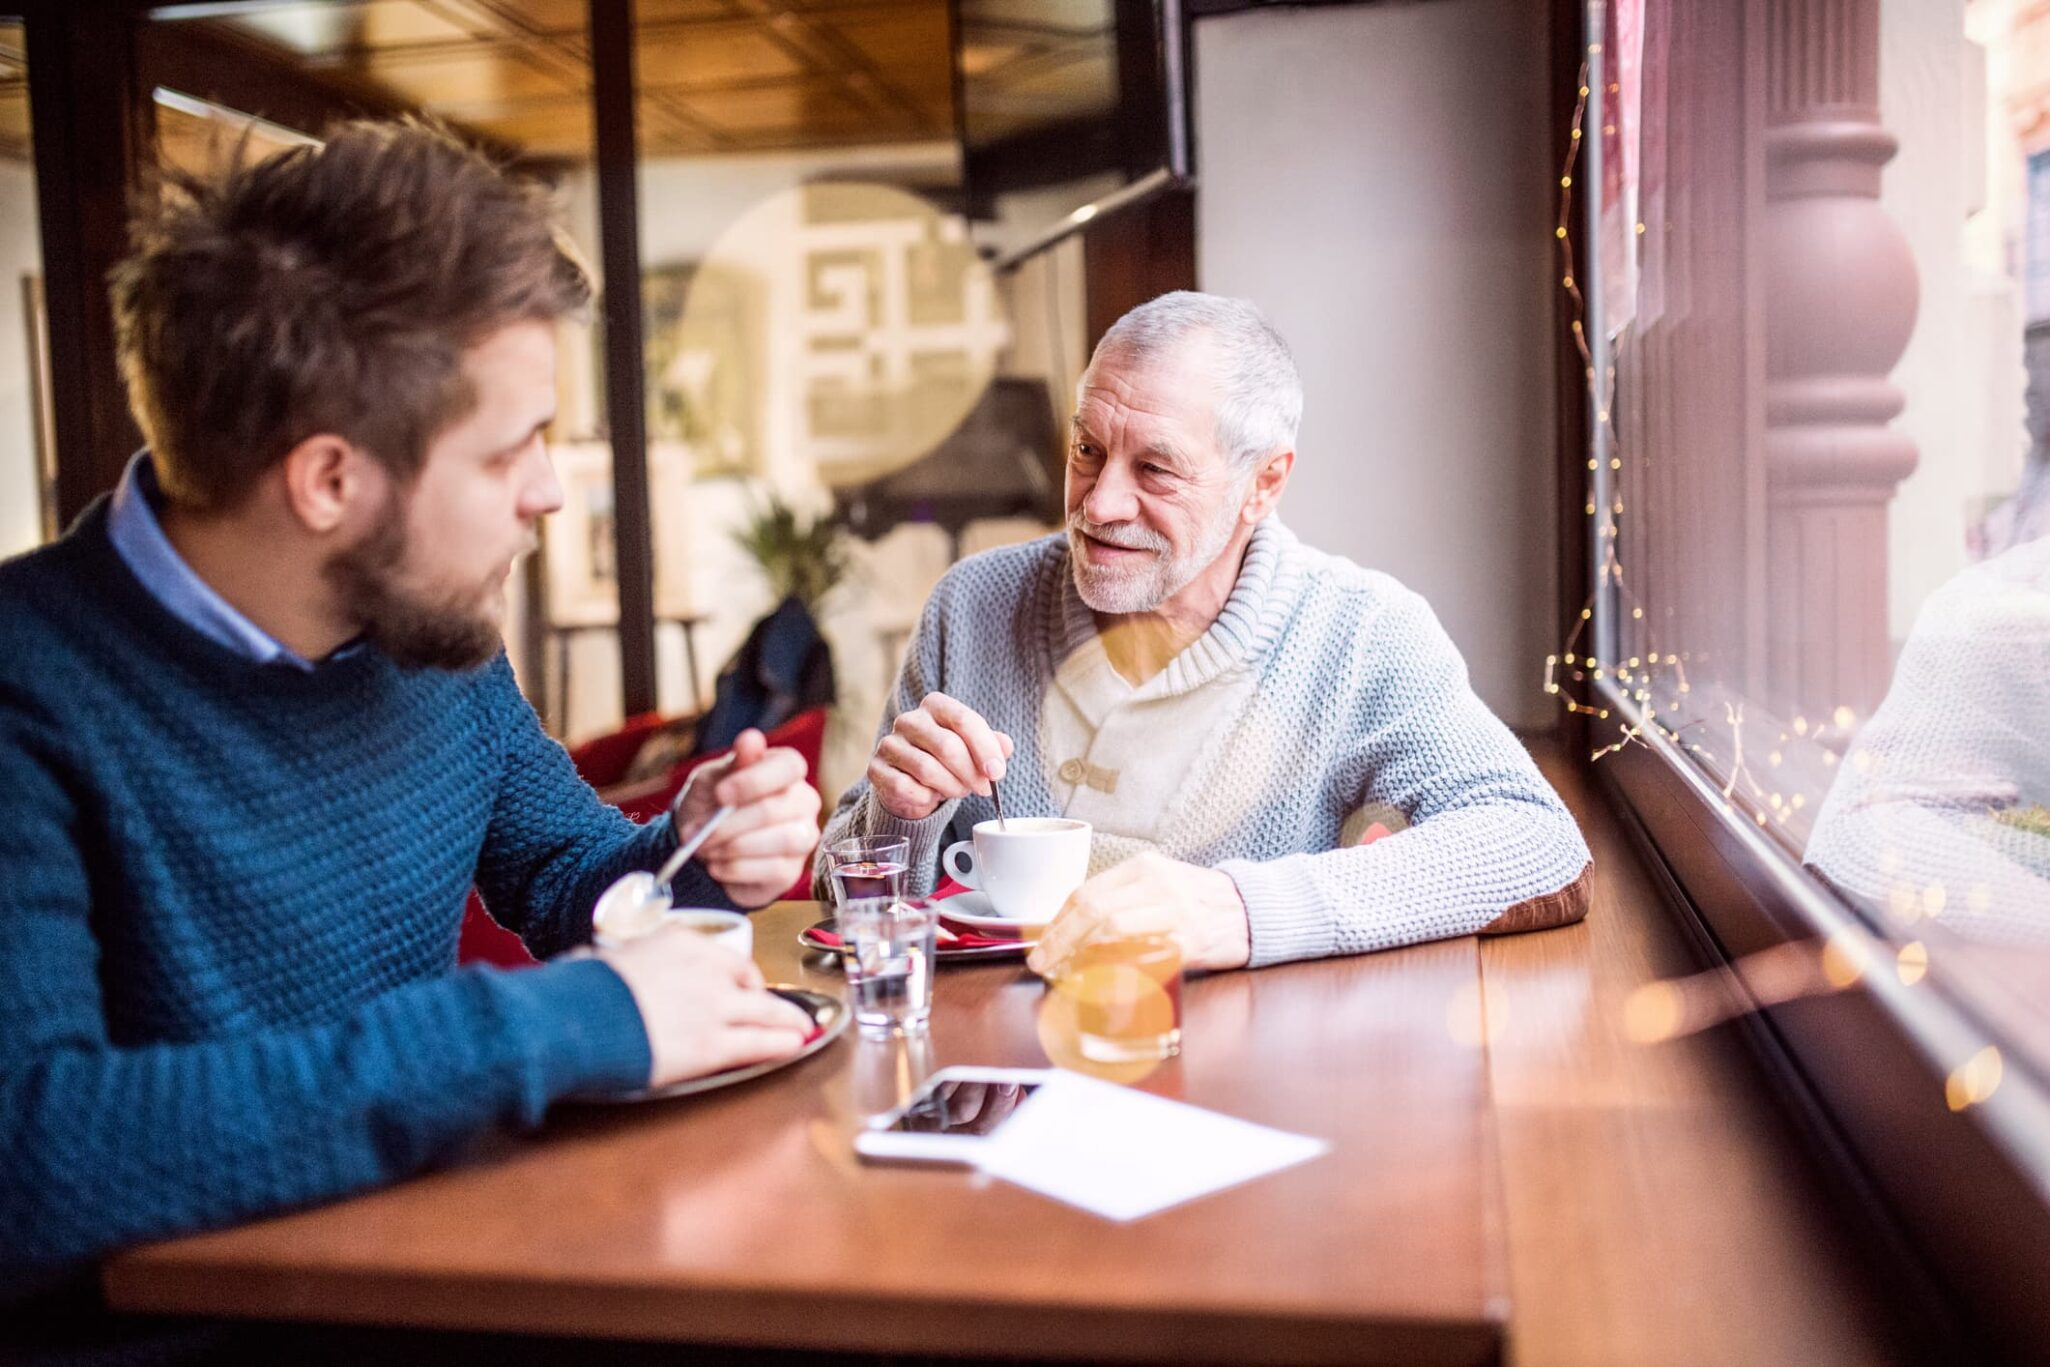 Adult son chatting over coffee with senior father